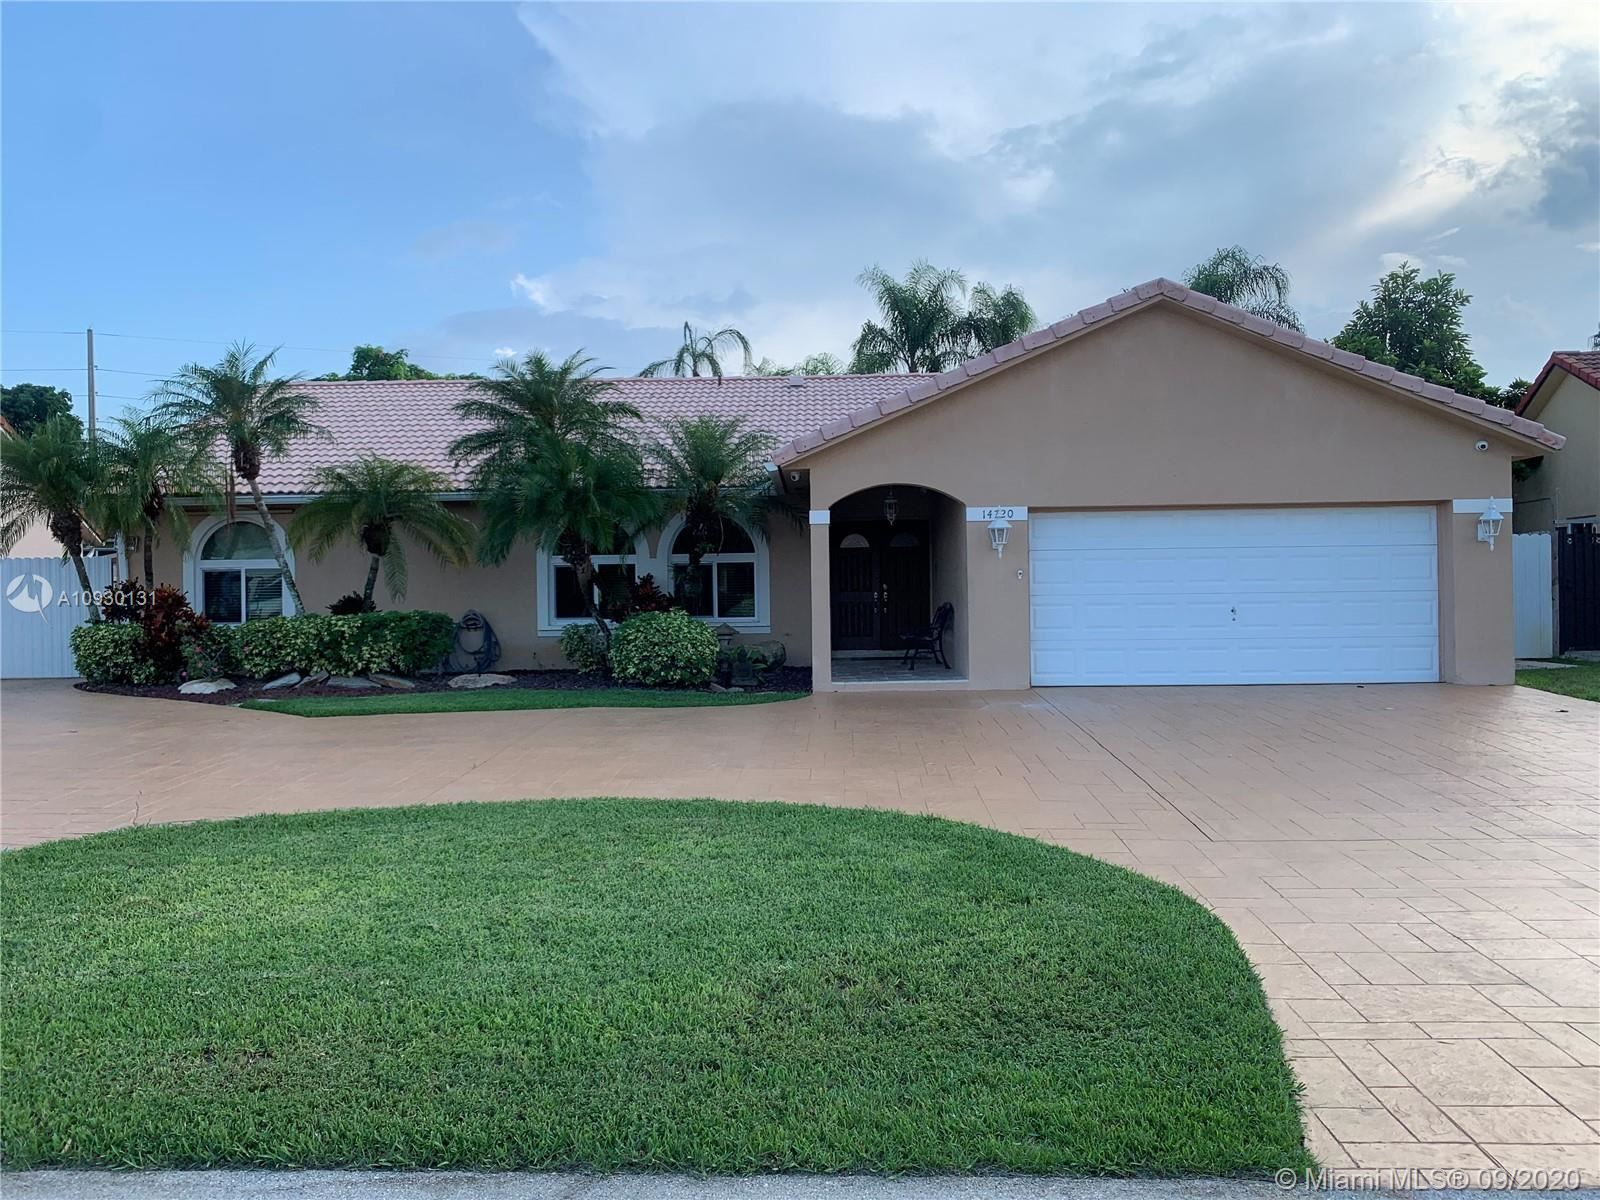 Photo of 14720 SW 150th St, Miami, FL 33196 (MLS # A10930131)